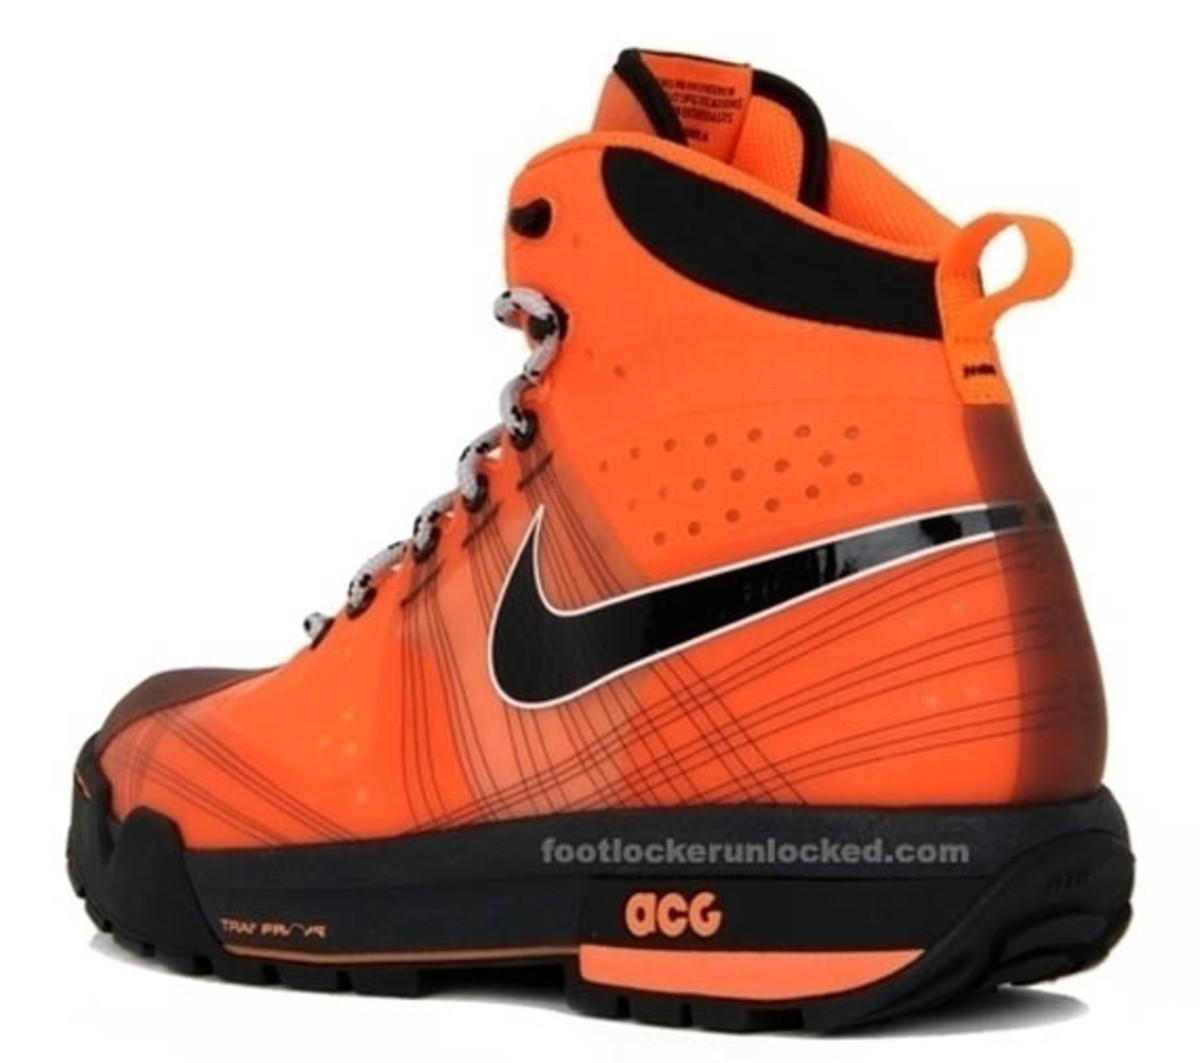 nike_acg_ashiko_boot_total_orange_4